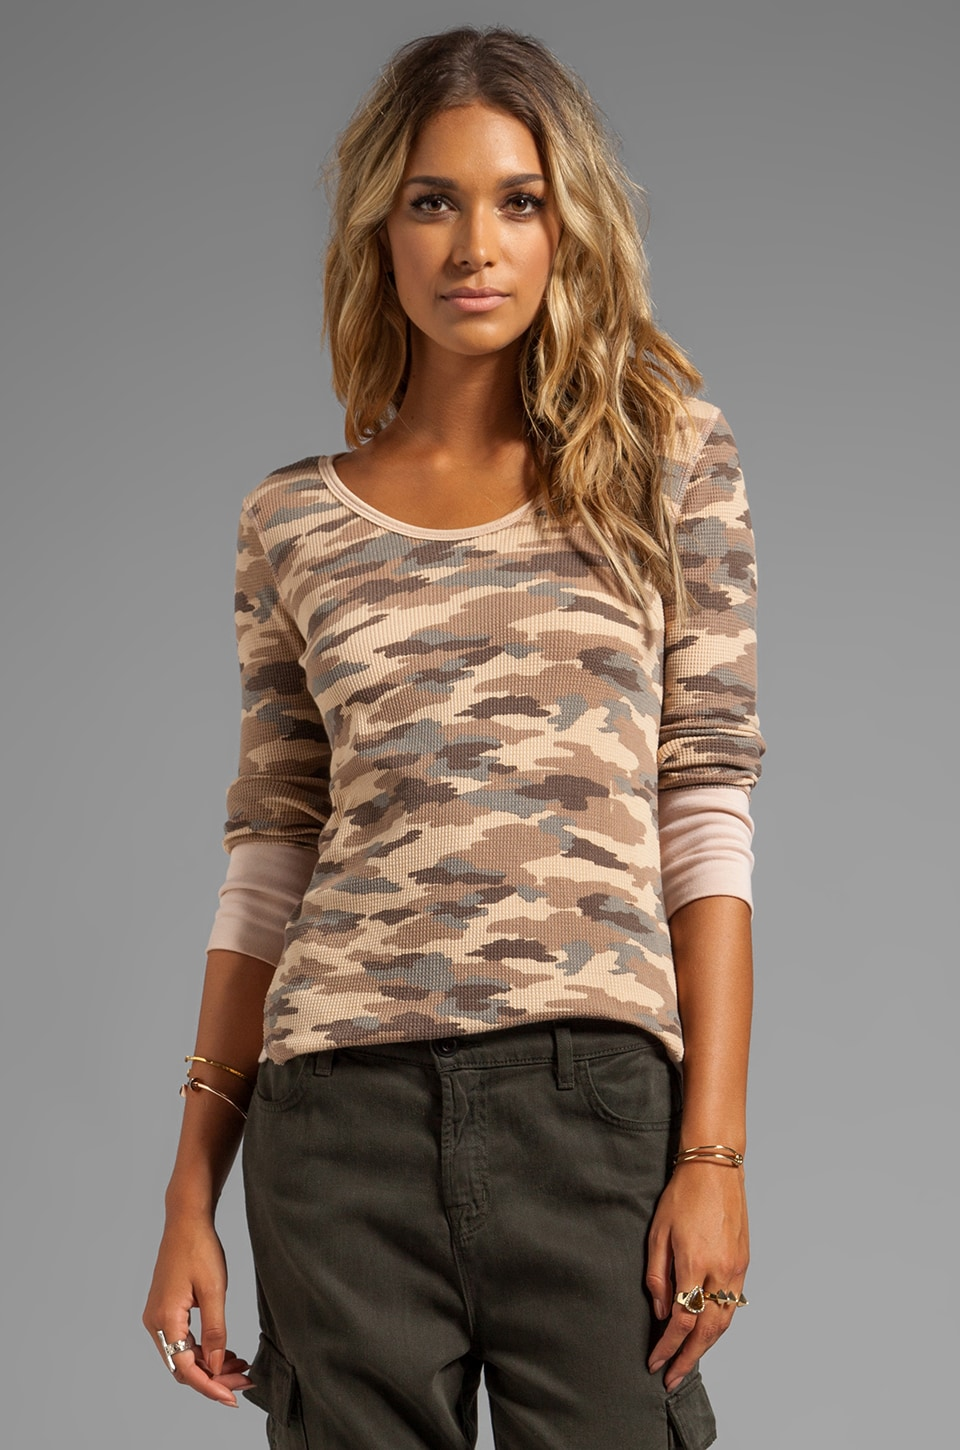 Free People Printed Thermal in Sand Combo